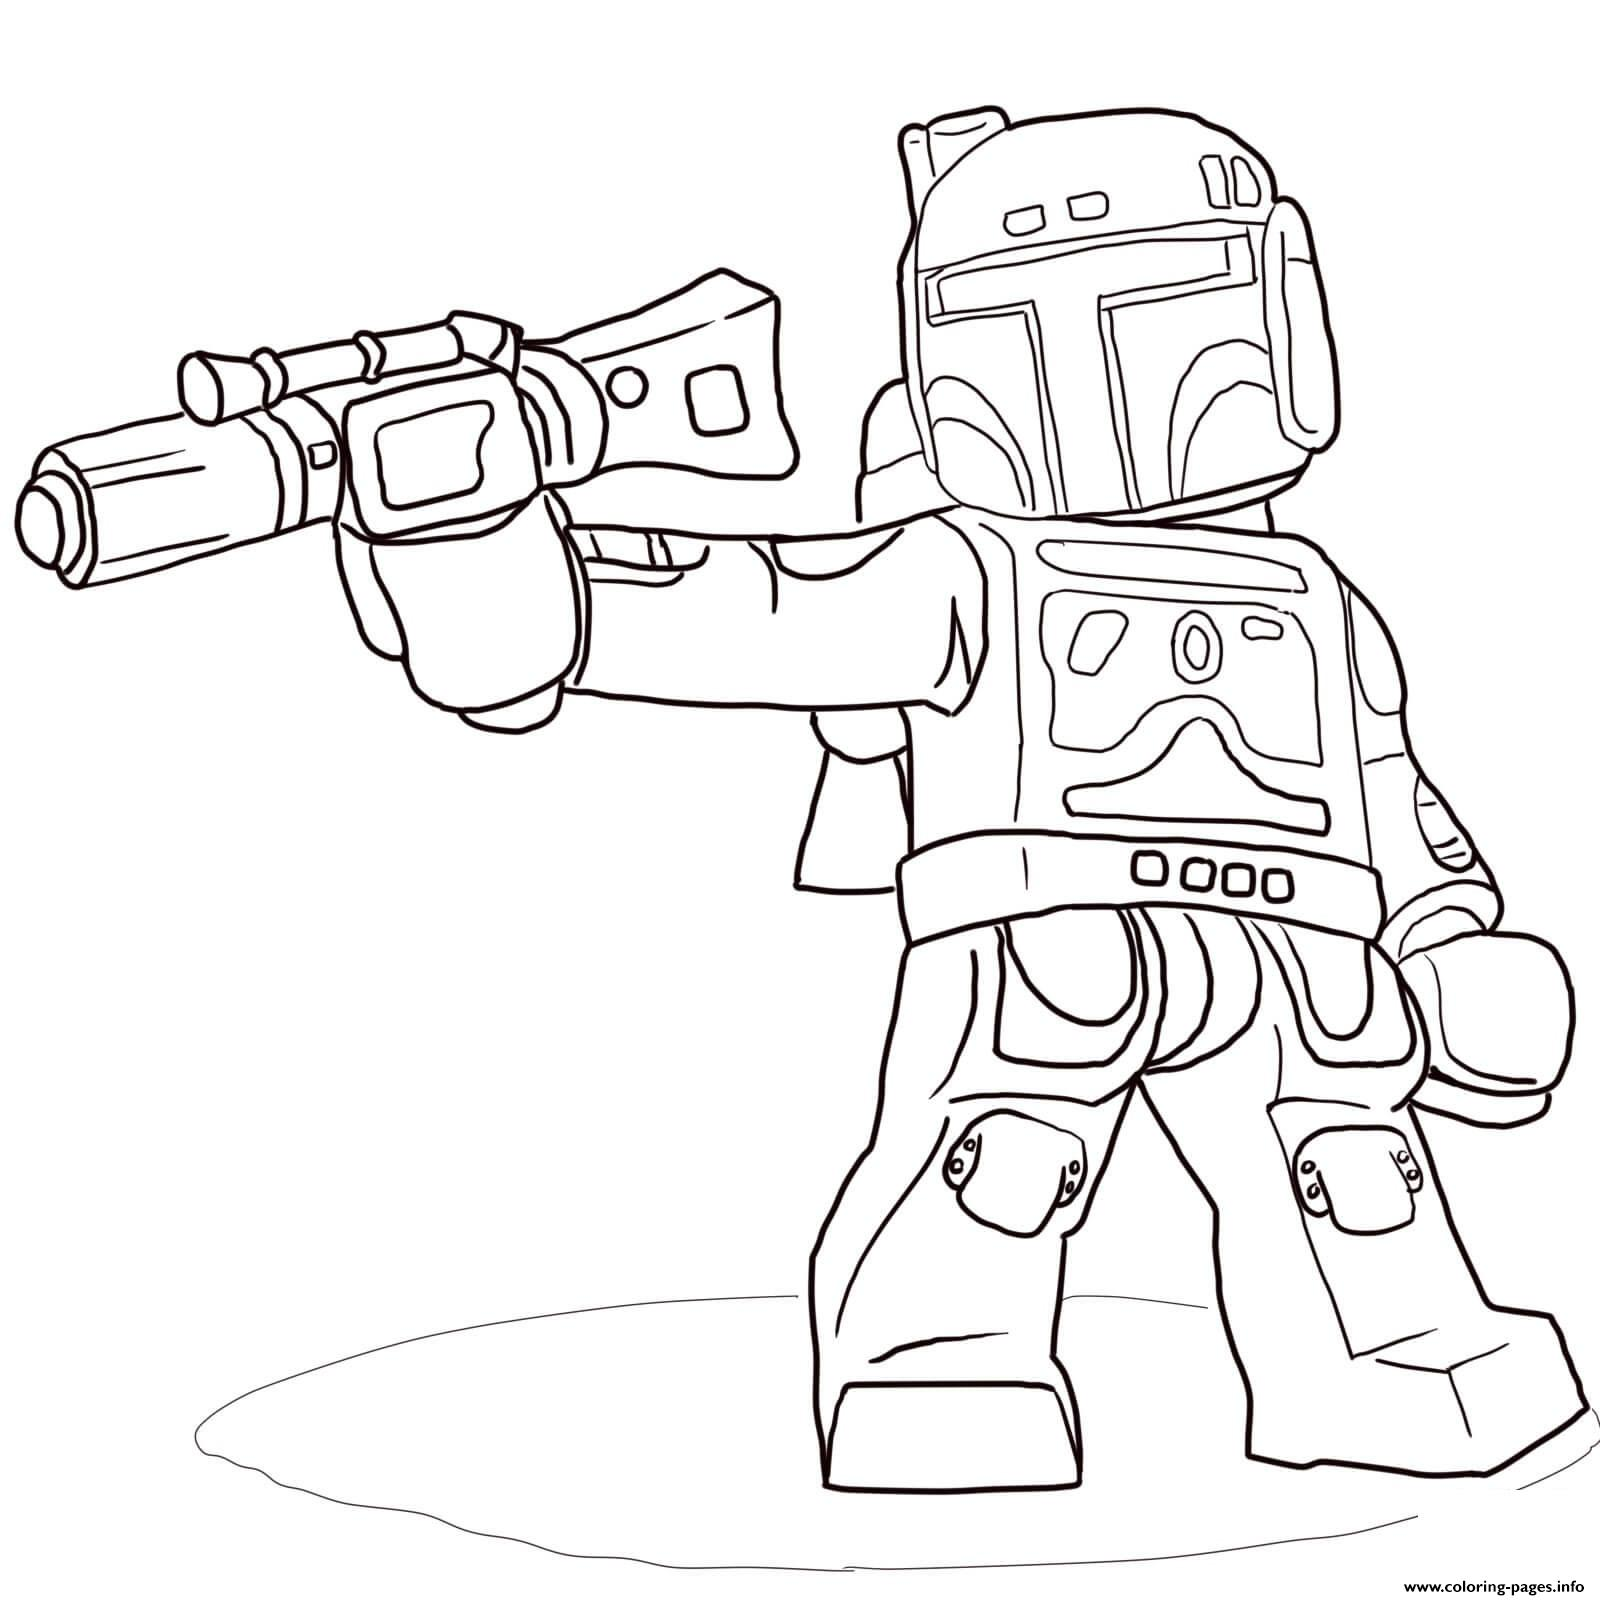 Lego Star Wars Boba Fett Coloring Pages Printable